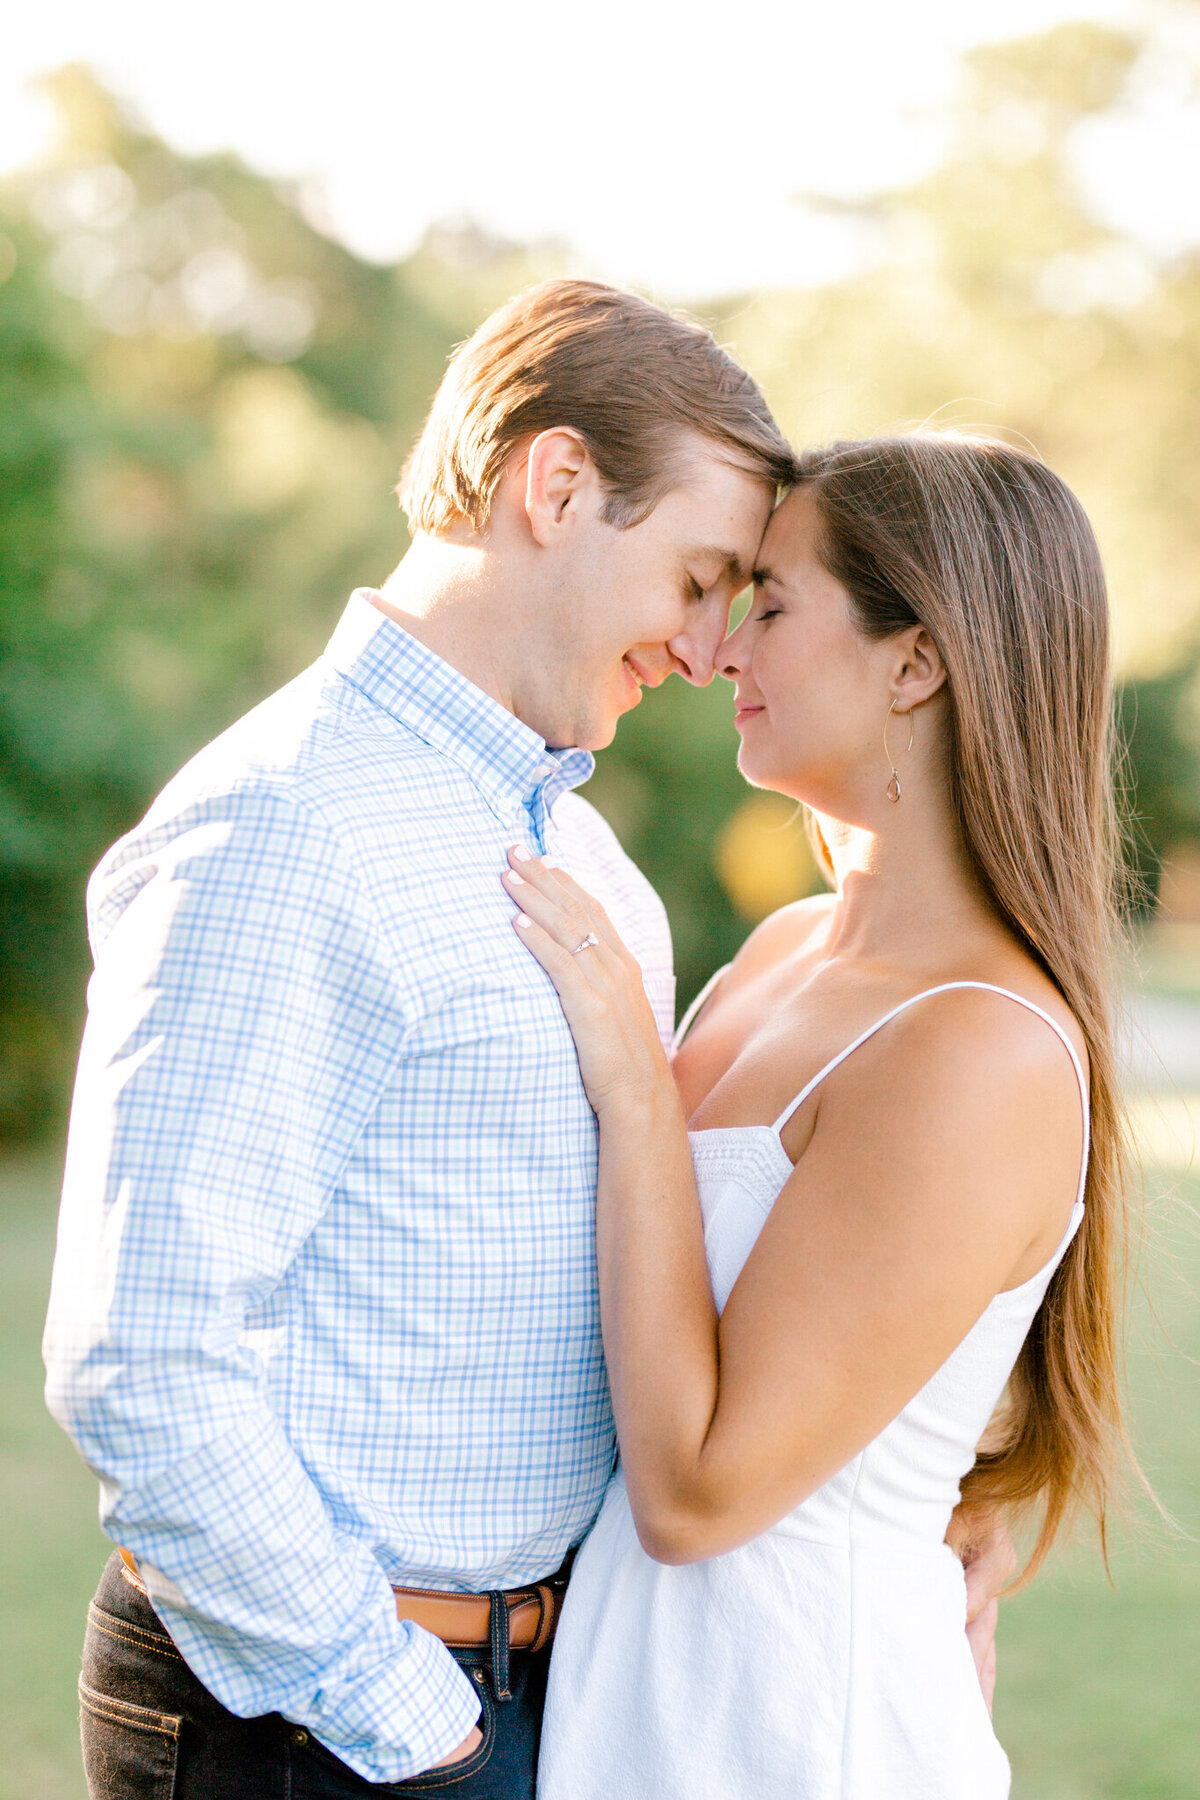 Christina & Steven Engagement Session at Prairie Creek Park in Richardson, Texas | DFW Wedding Photographer | Sami Kathryn Photography-6